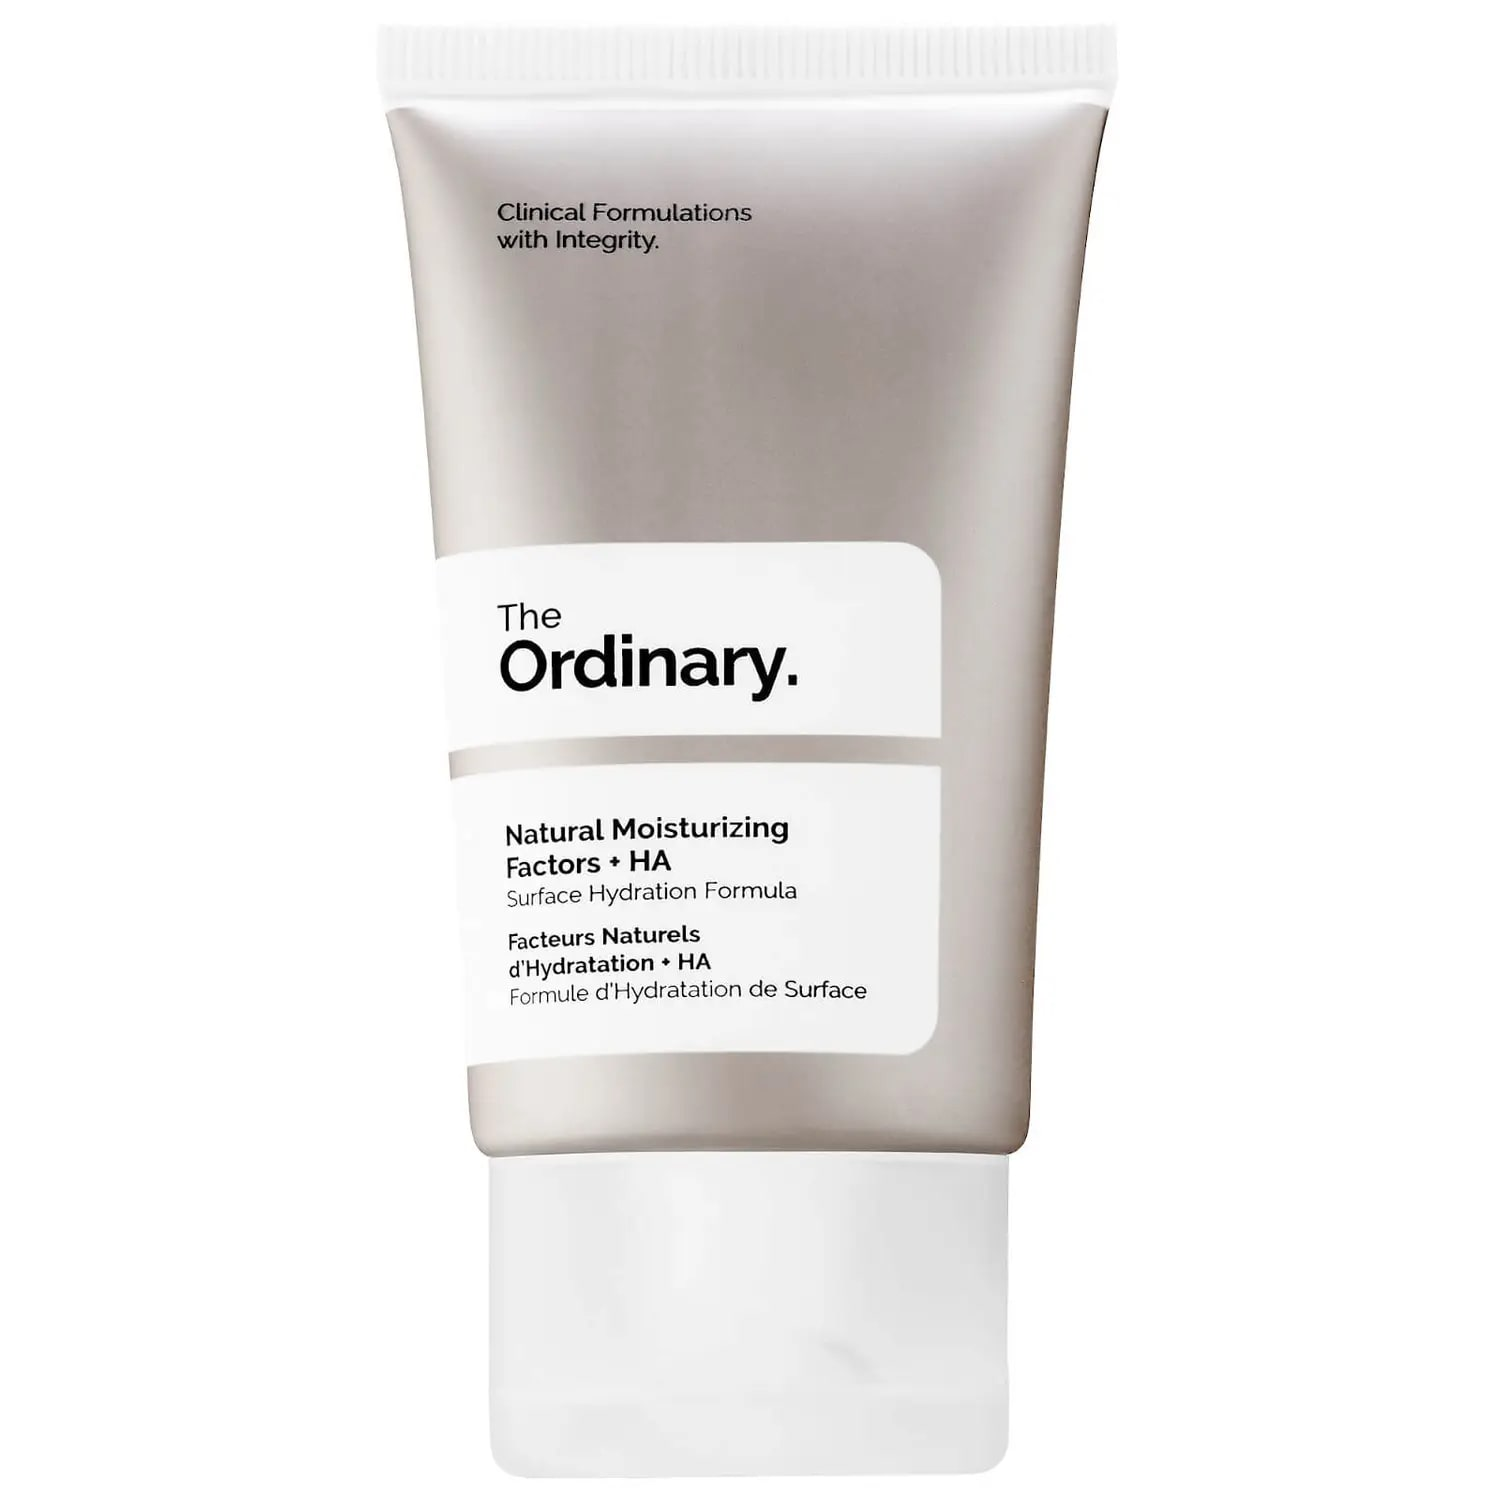 The Ordinary discount